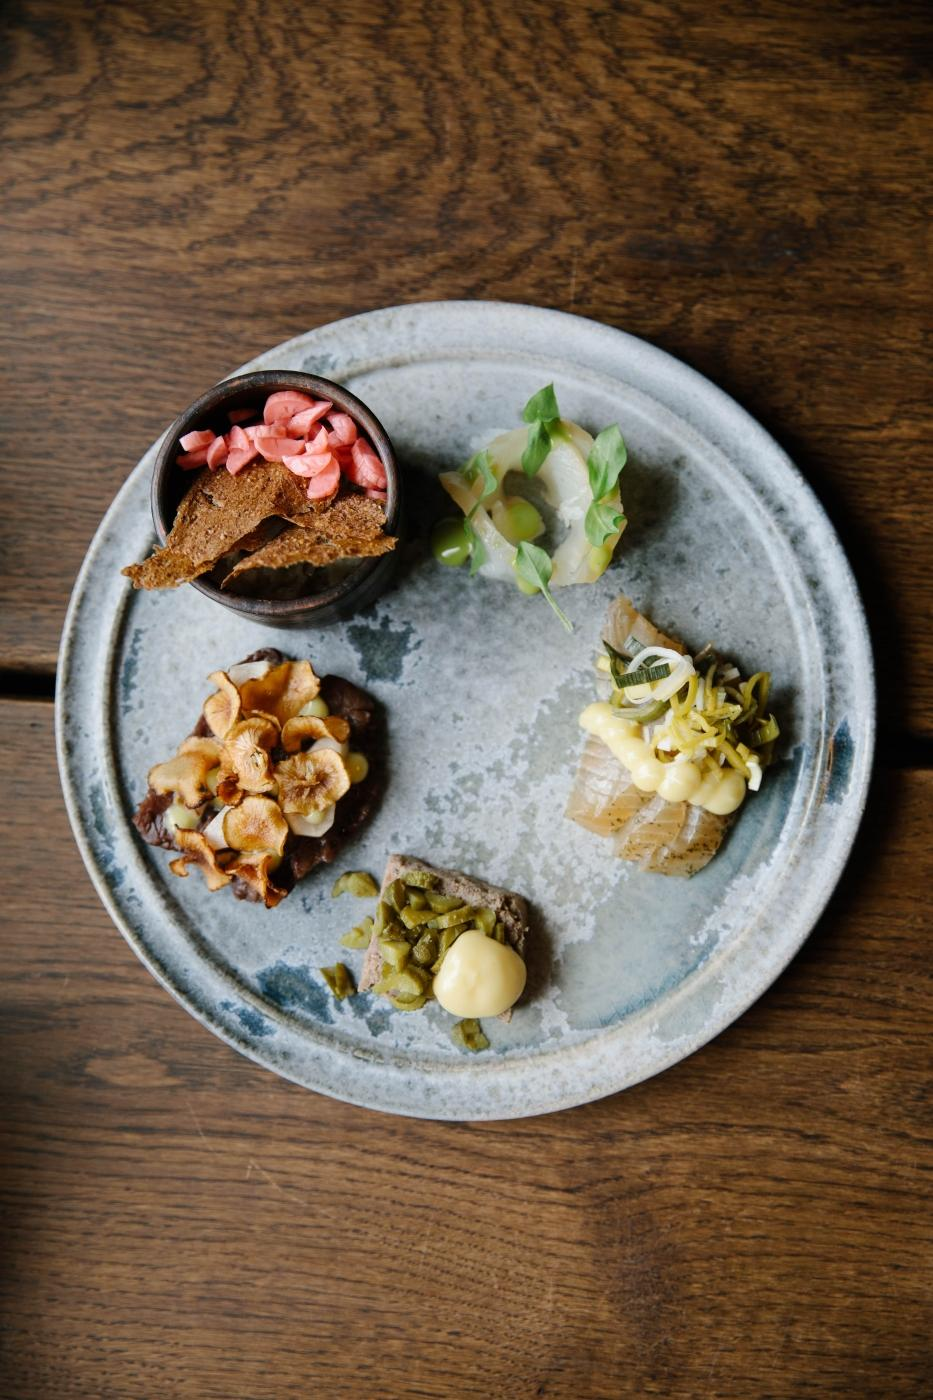 Lunch platter in the Ilimanaq restaurant with wild, foraged ingredients - mushrooms, muskox pate, raw and smoked halibut 2. Photo by Jessie Brinkman Evans